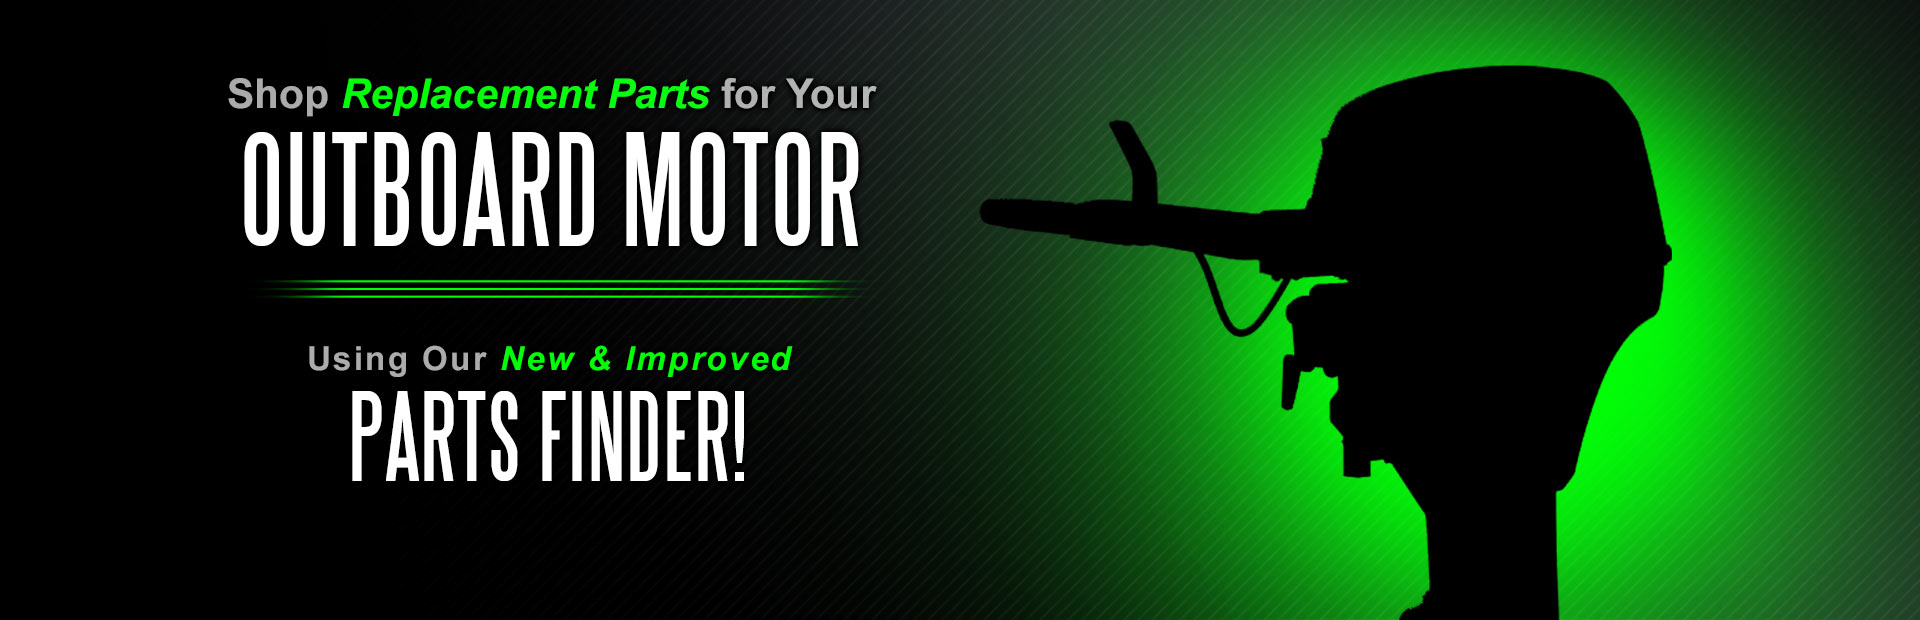 Shop replacement parts for your outboard motor using our new and improved Parts Finder!